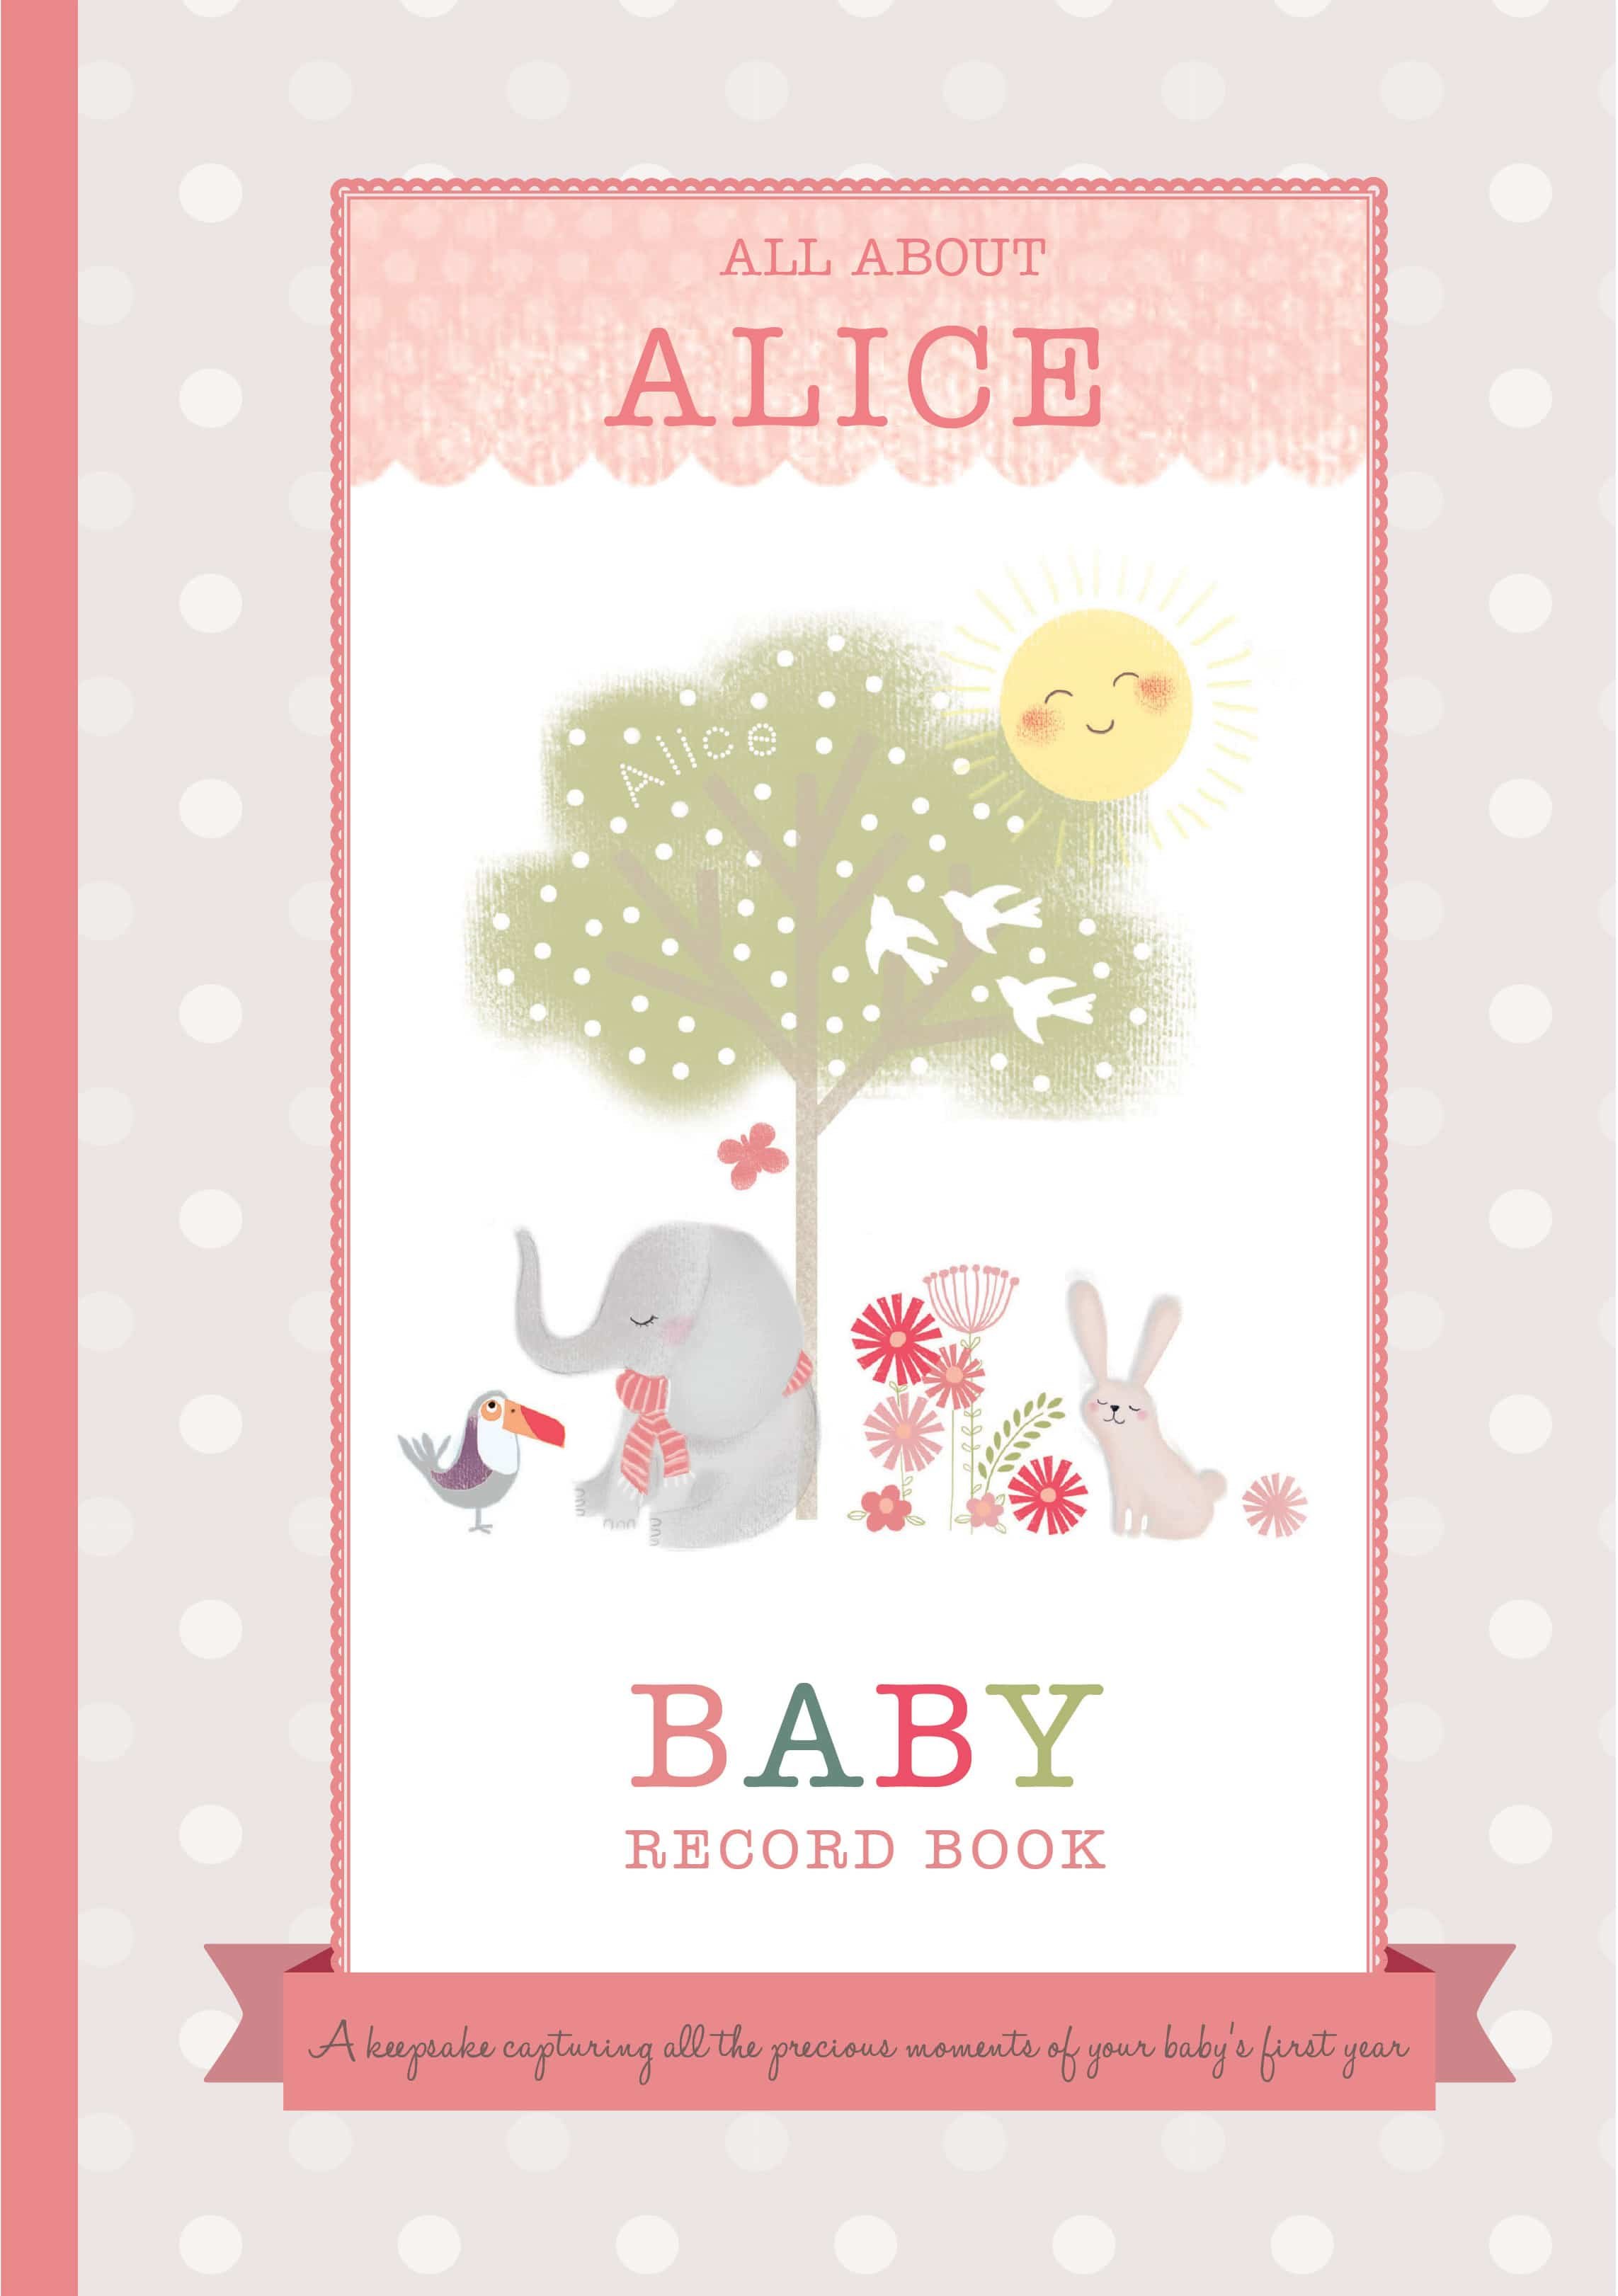 baby record book cover image